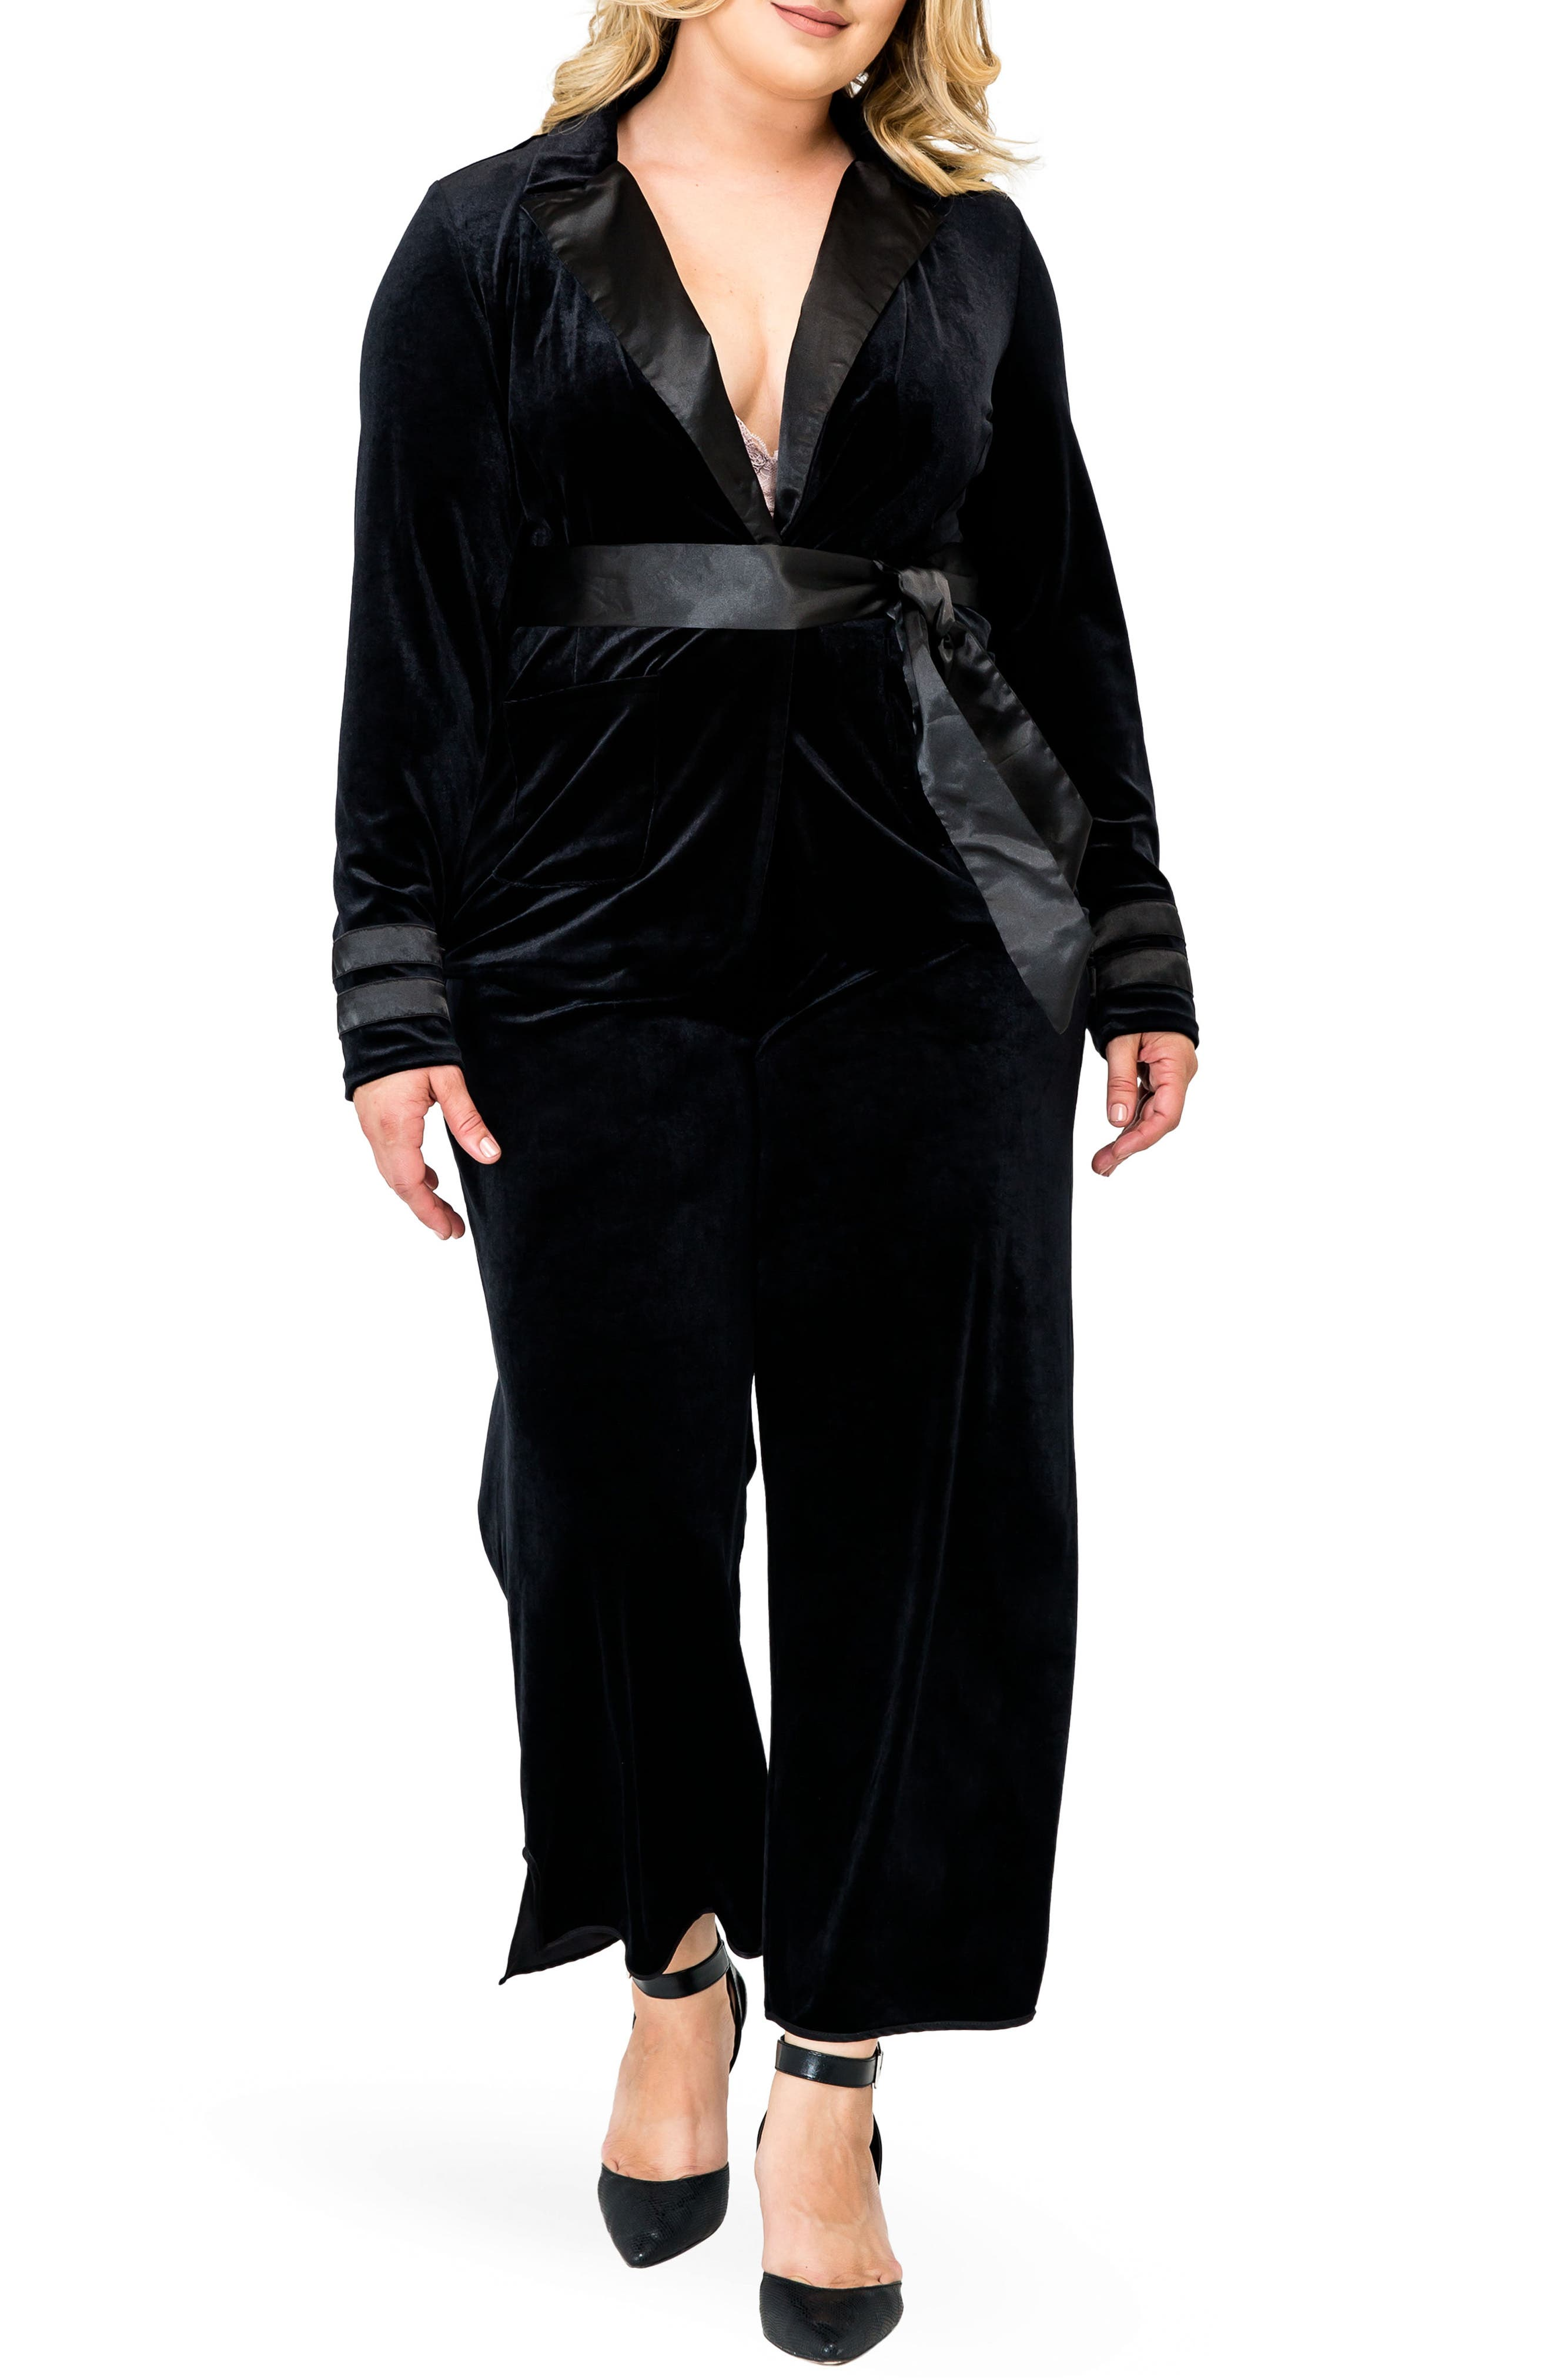 Lottie Velvet & Satin Jacket,                             Alternate thumbnail 3, color,                             BLACK